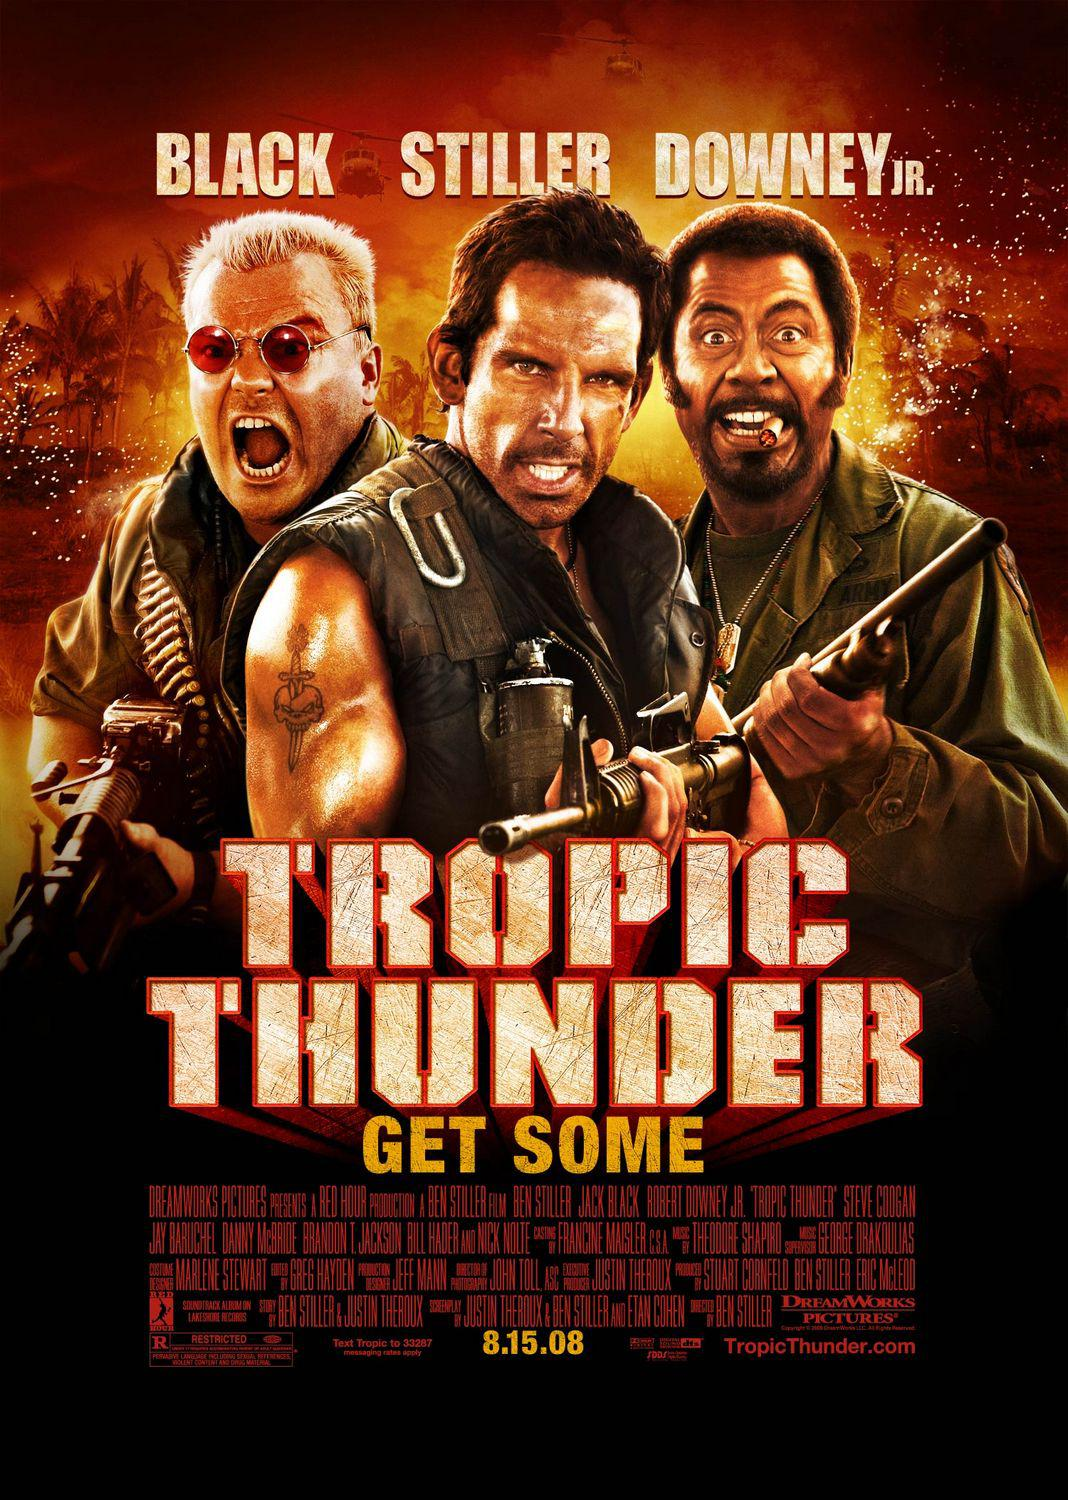 Tropic Thunder - Black - Ben Stiller - Robert Downey Jr